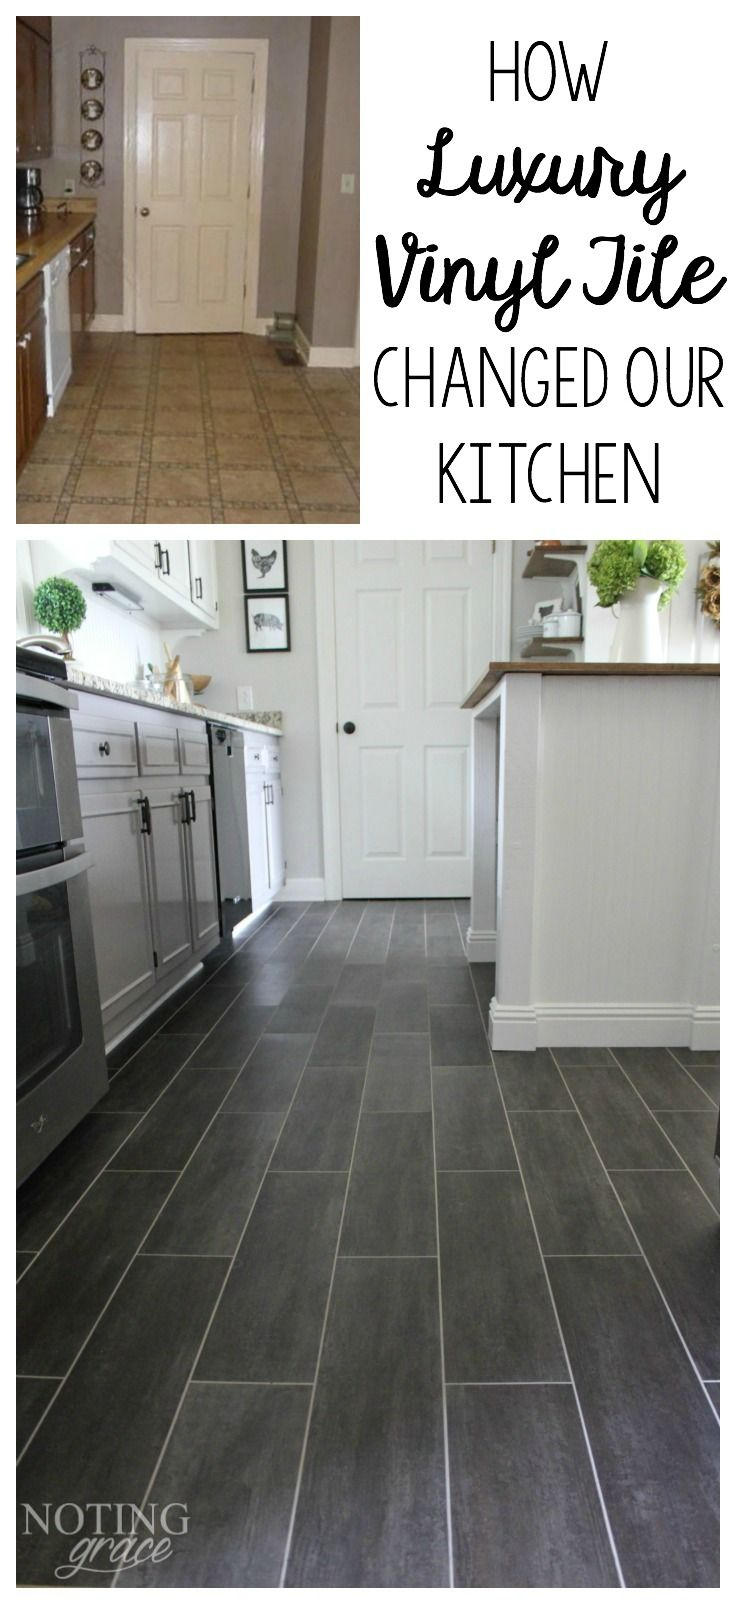 Diy kitchen flooring luxury vinyl tile vinyl tiles and luxury vinyl - Small kitchen floor tile ideas ...